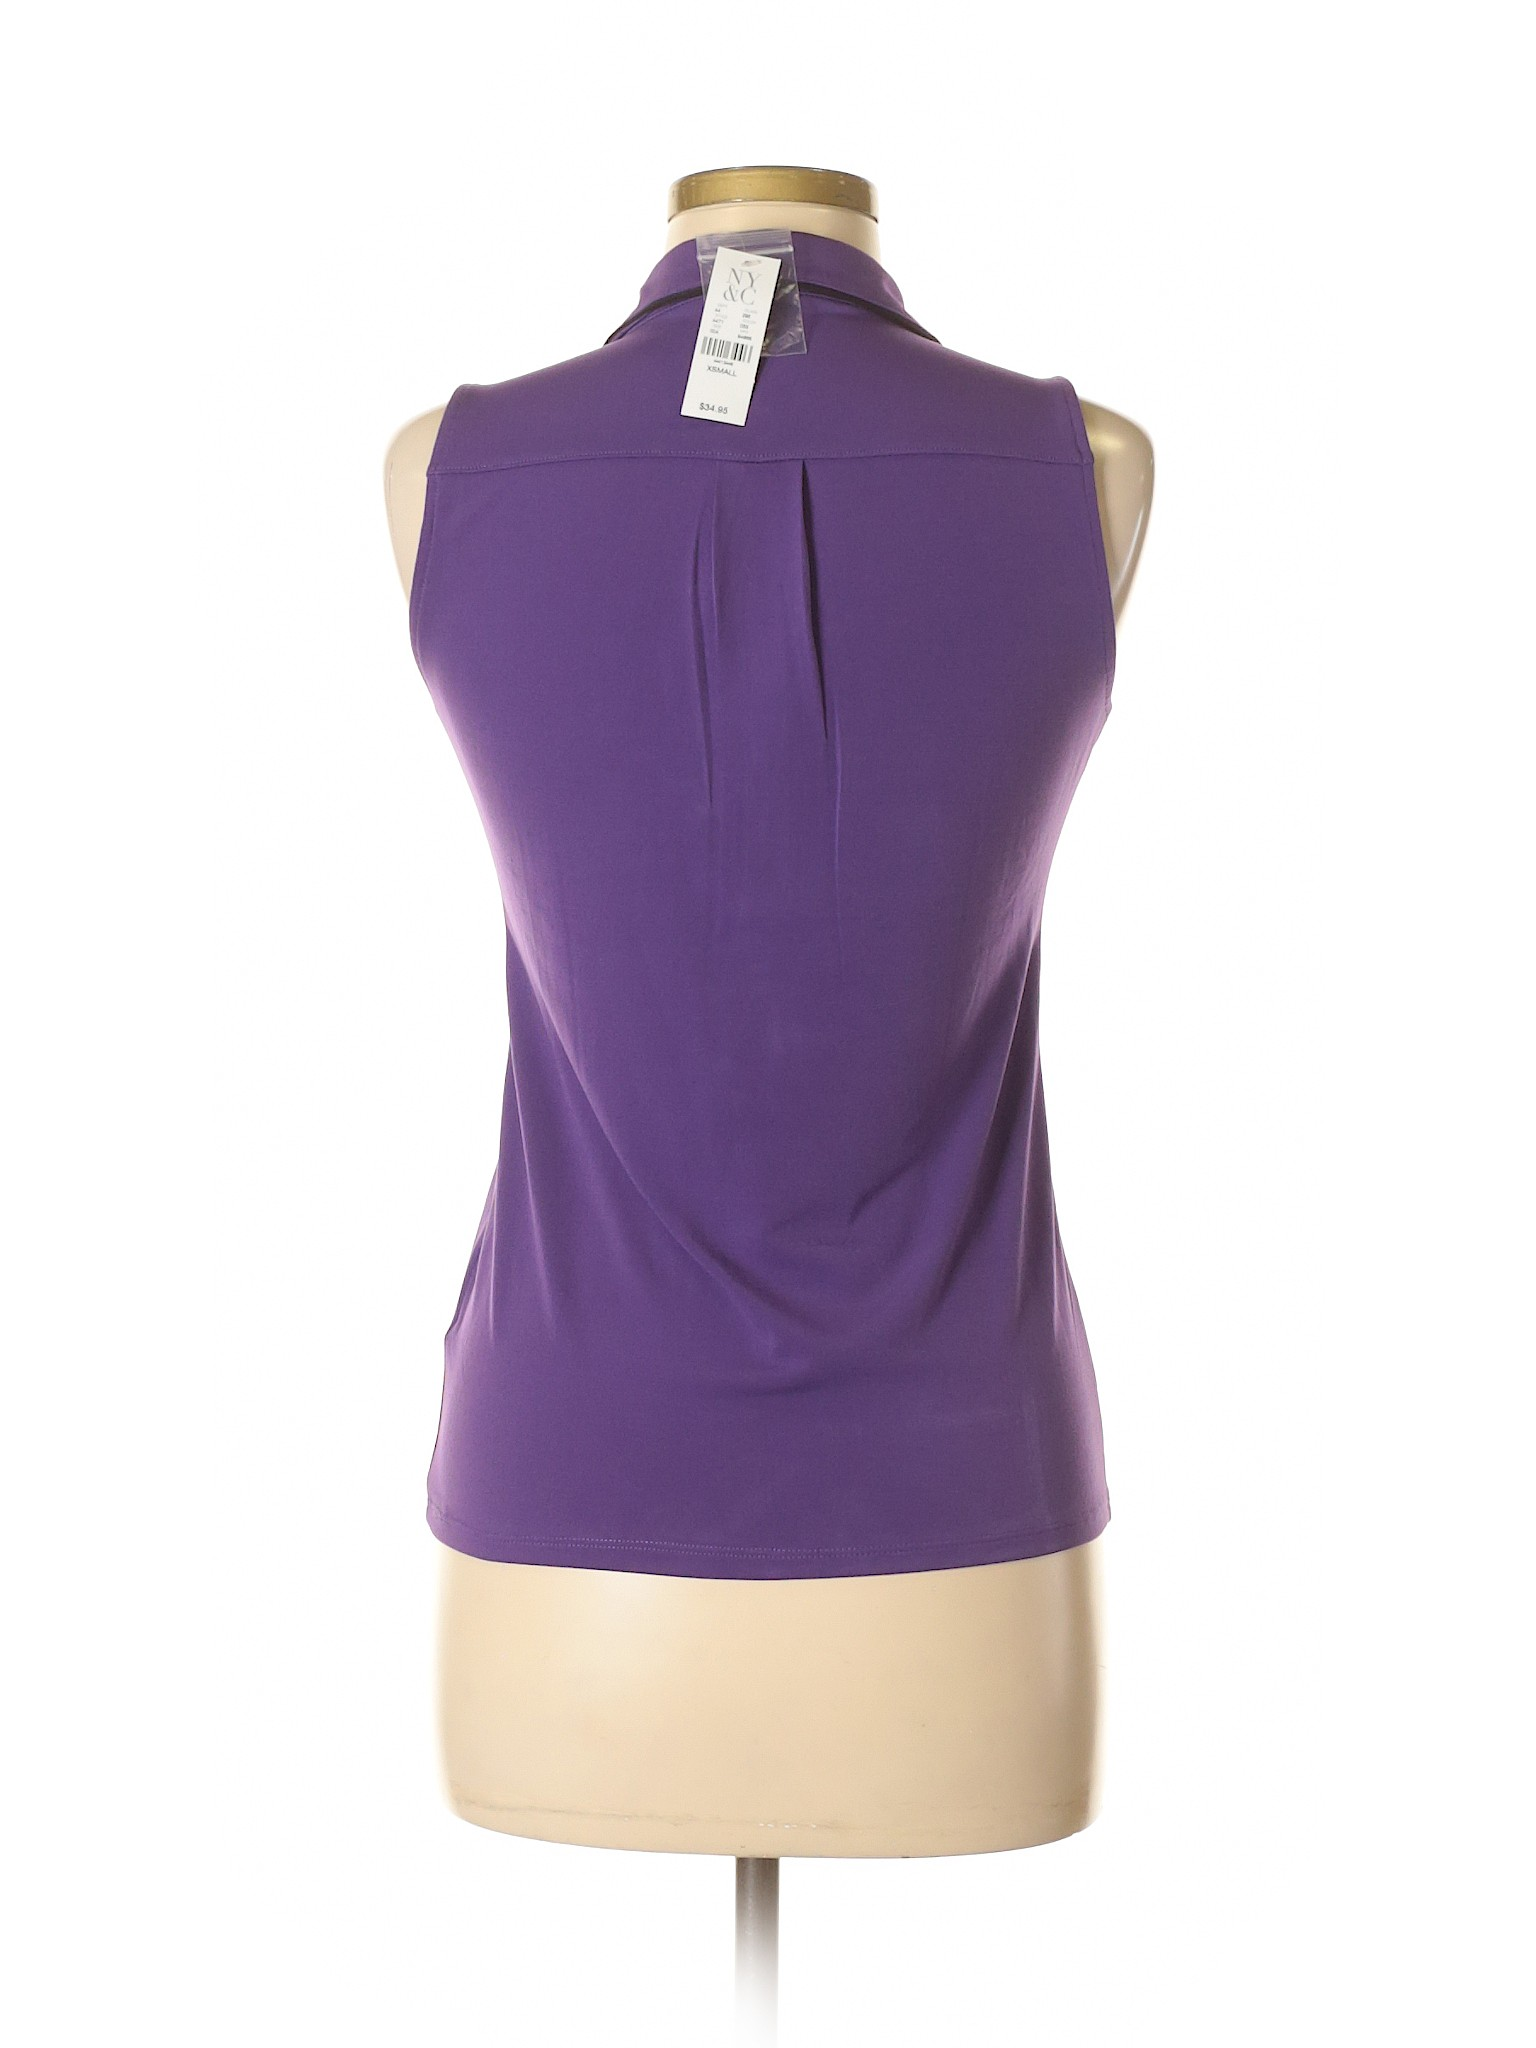 New York U0026 Company Sleeveless Henley: Size 0.00 Dark Purple Womenu0027s Tops    New With